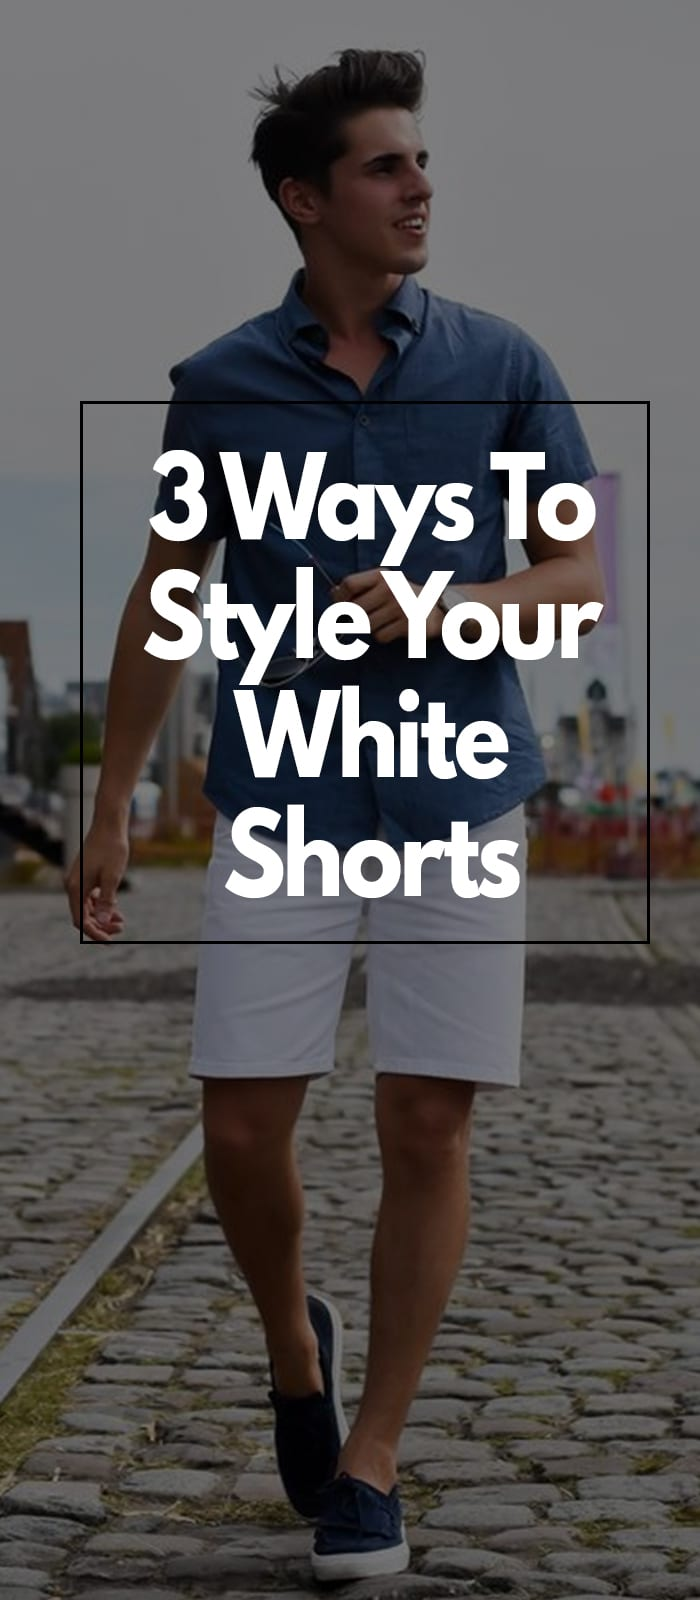 Blue shirt and white shorts for men to try